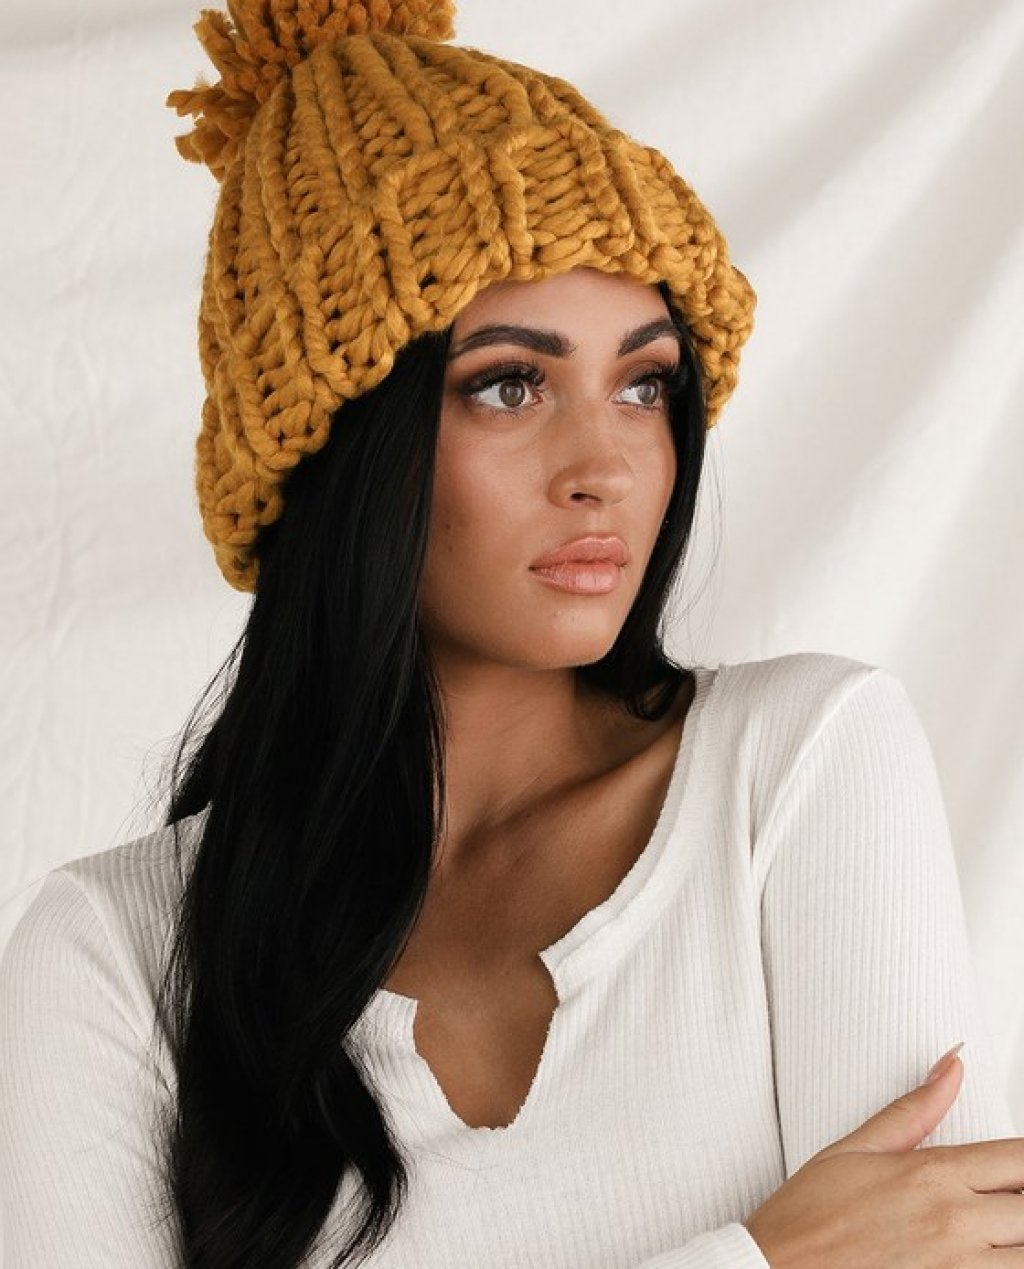 Warm Feelings Mustard Yellow Chunky Knit Pom Pom Beanie